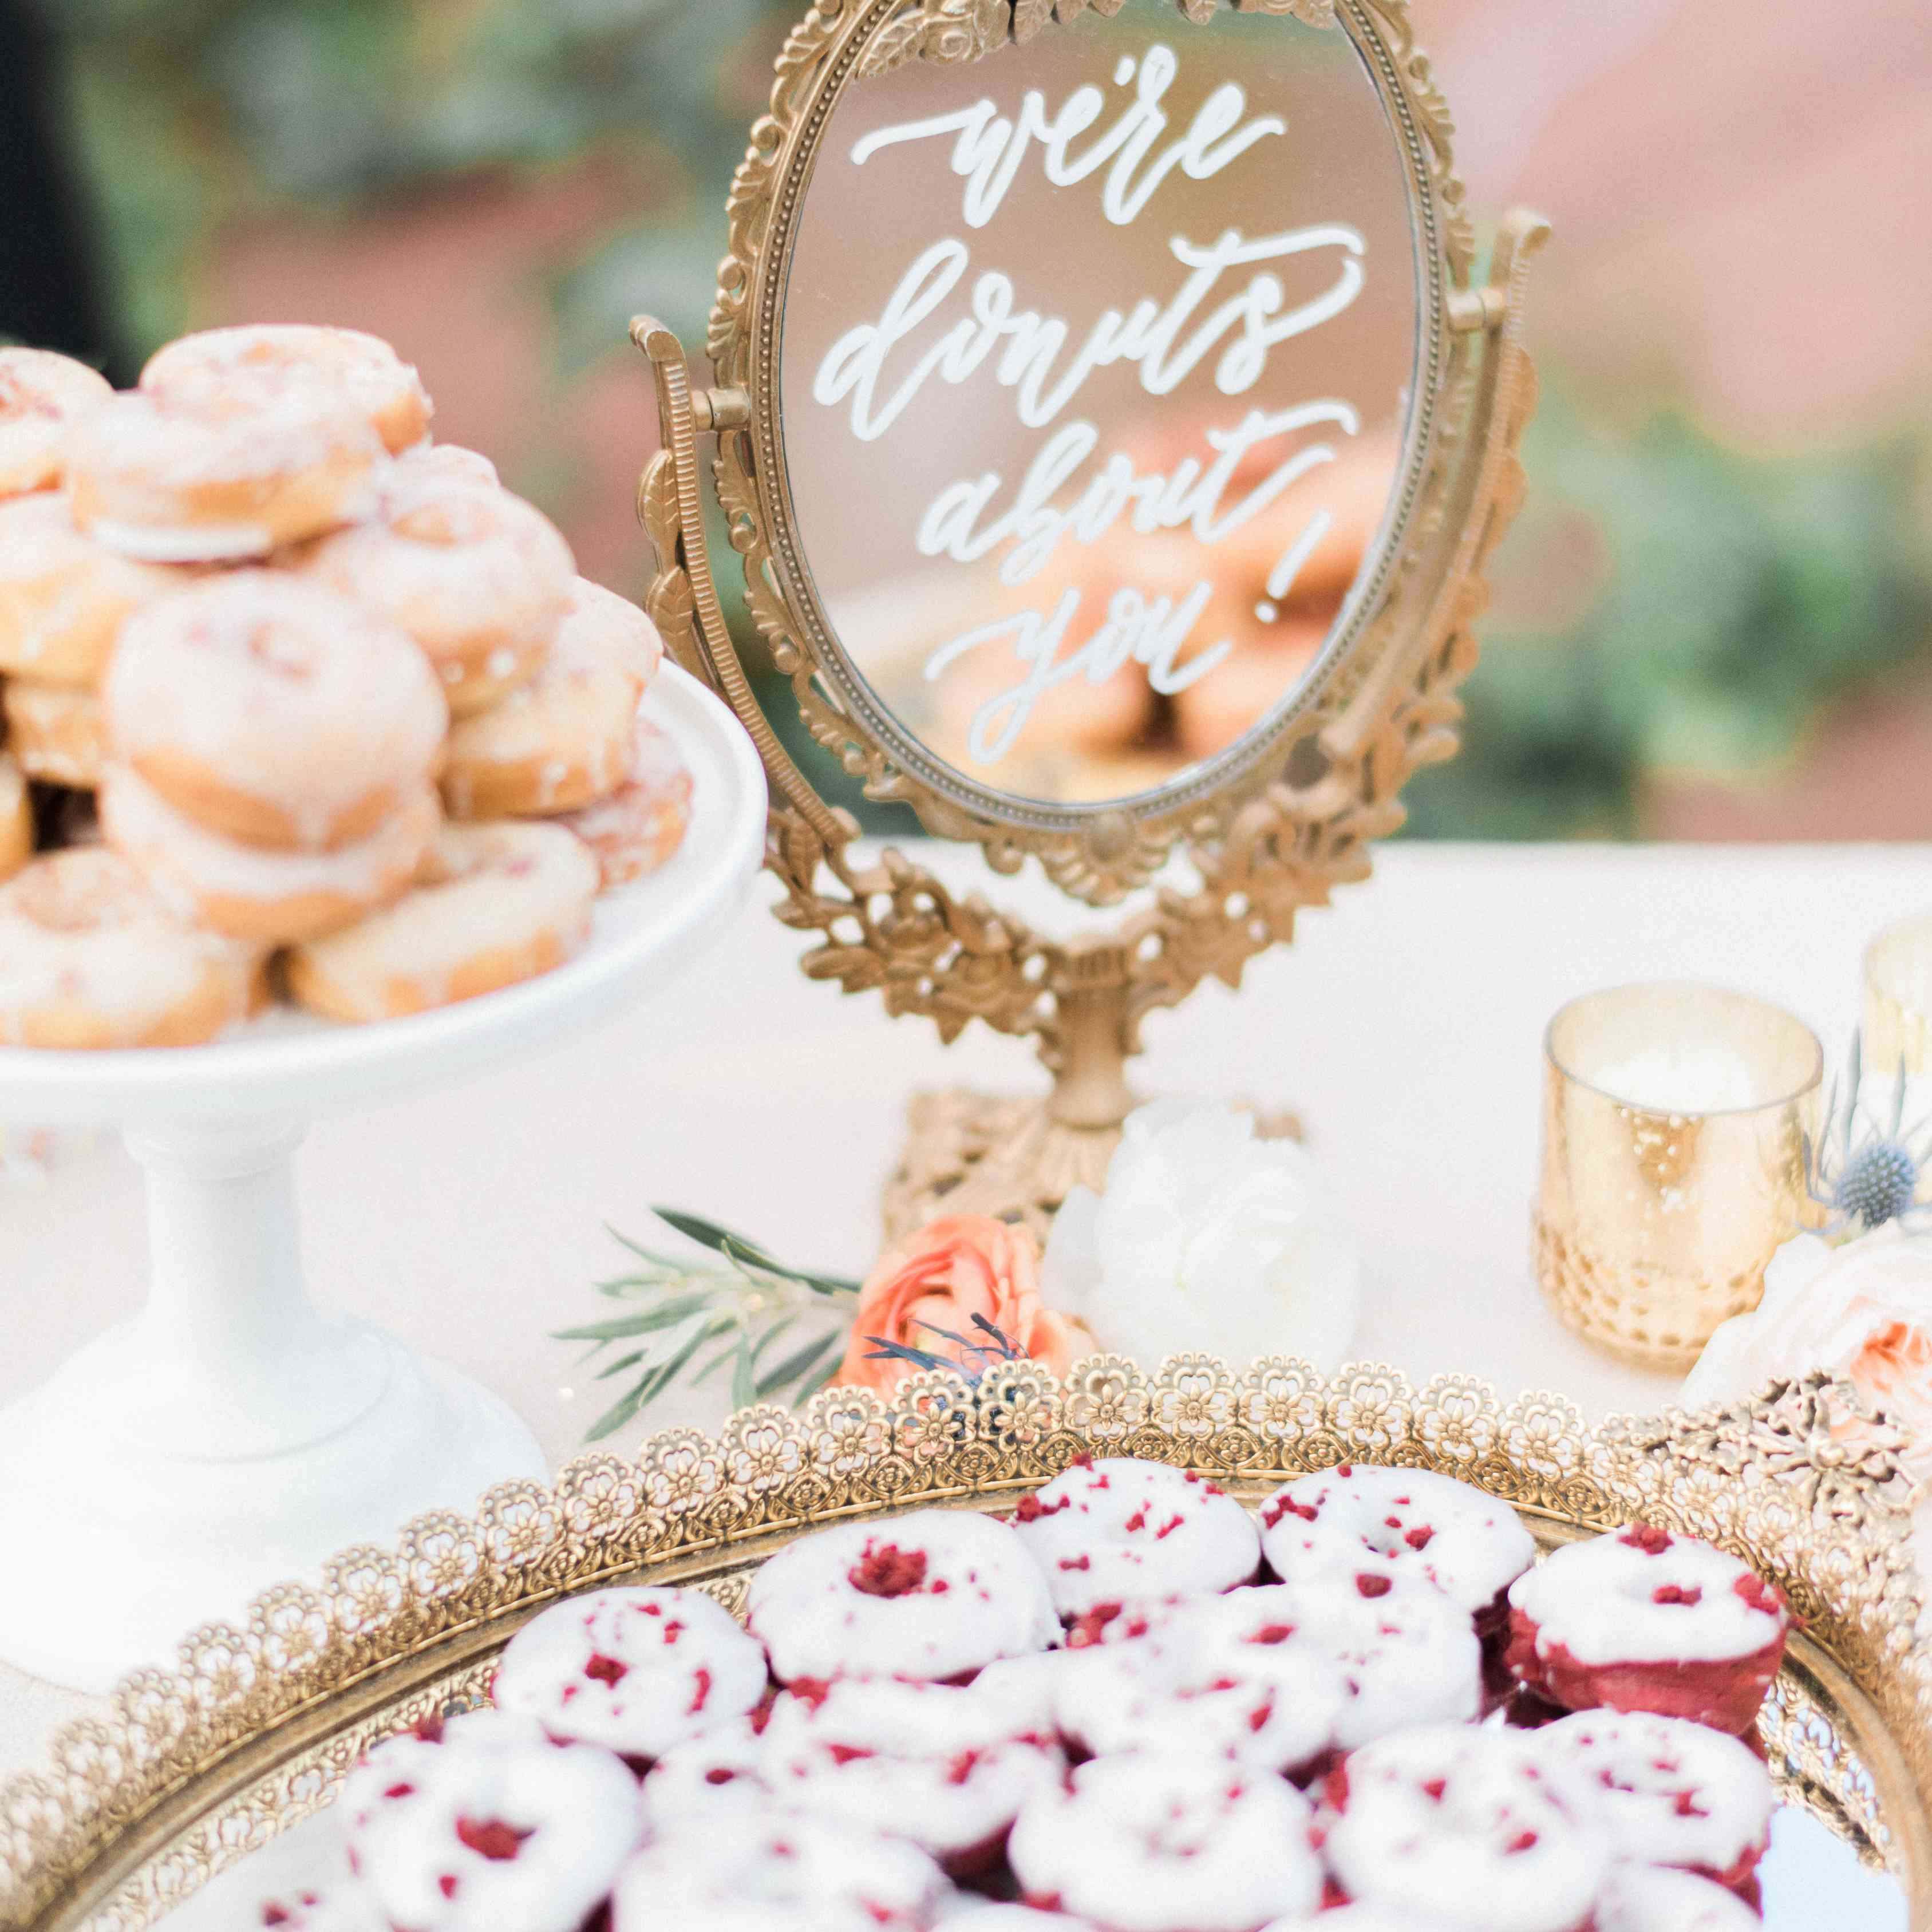 Mirrored dessert table sign